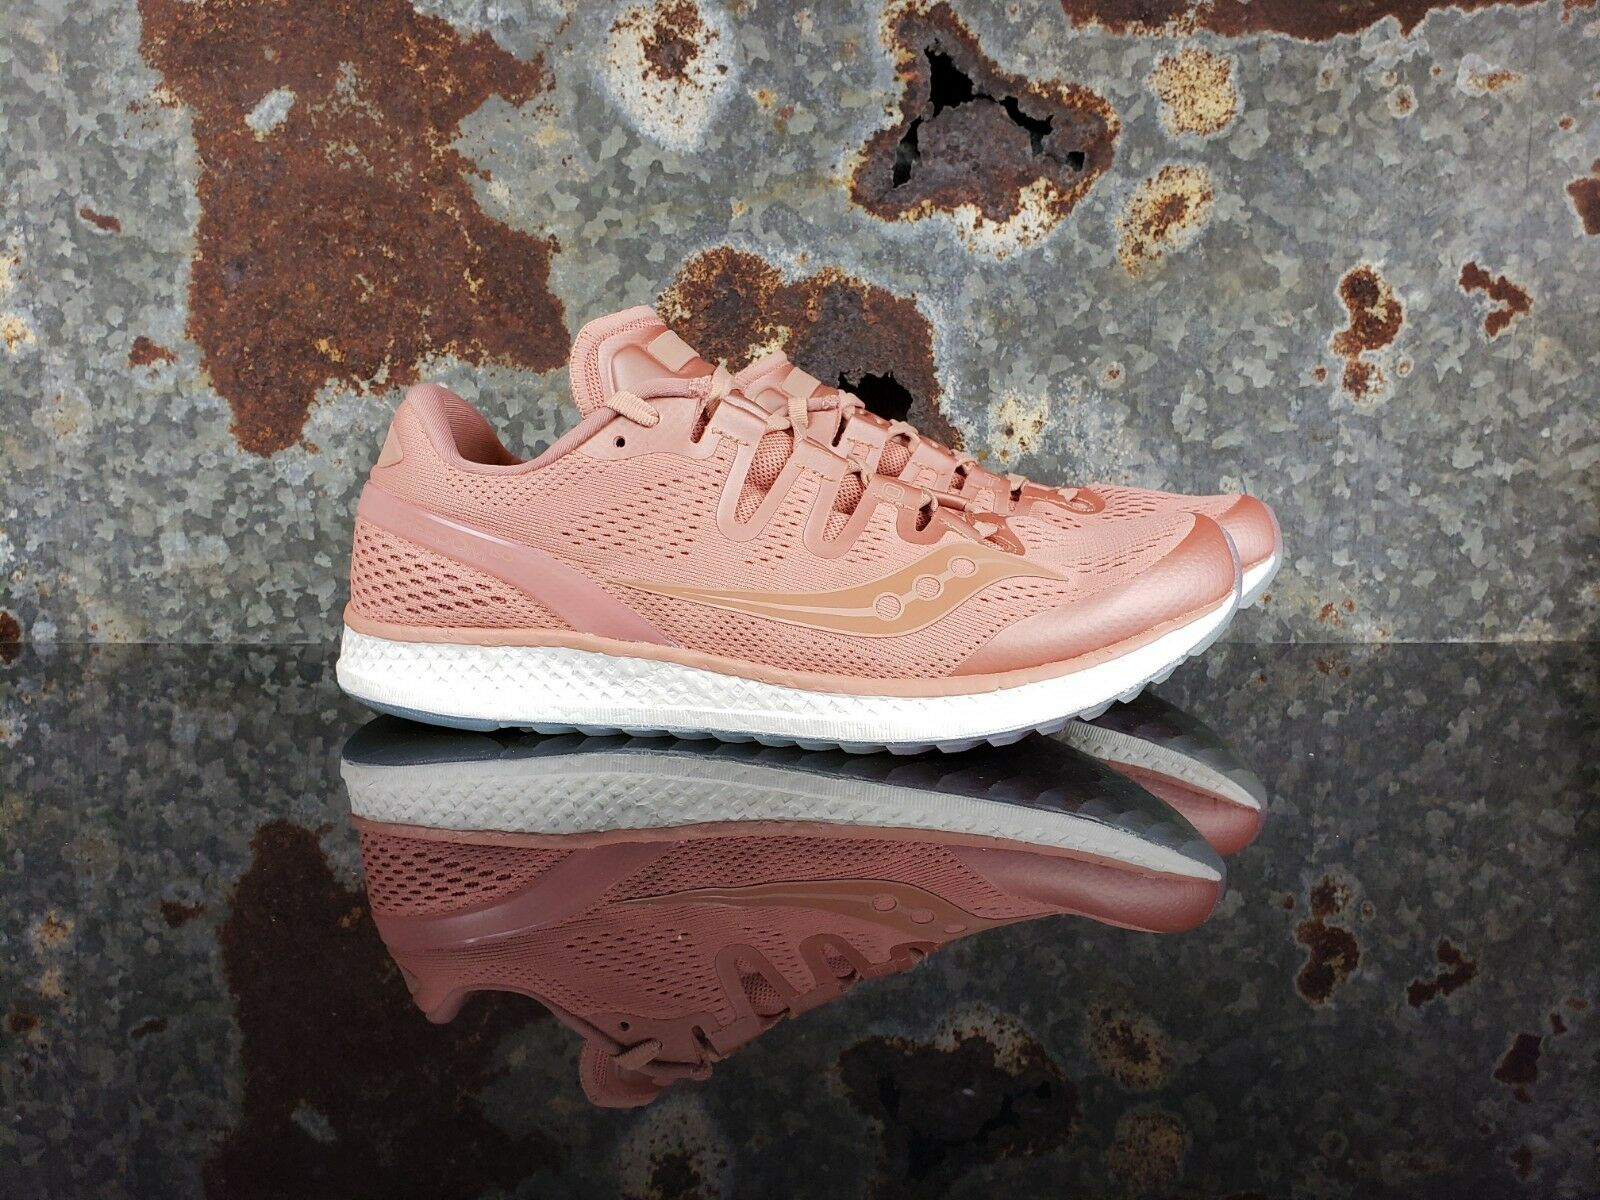 Saucony Freedom ISO Running Training  Pink Shoes S20355-52 Uomo Size 9.5